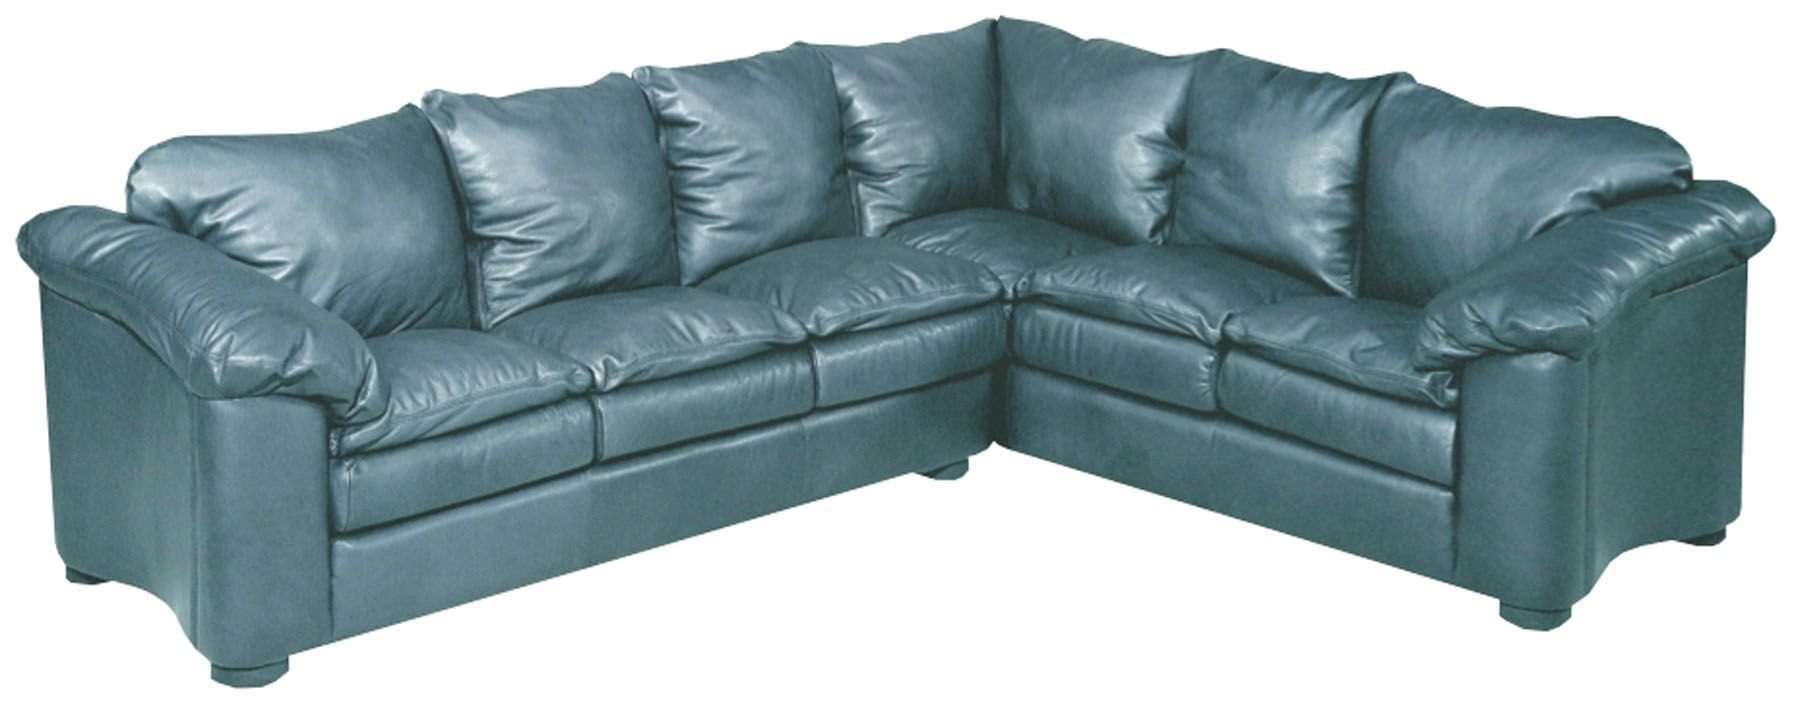 Unique Modern Teal Leather Sectional Sofa For You Leather Sectional Leather Sectional Sofa Sofa